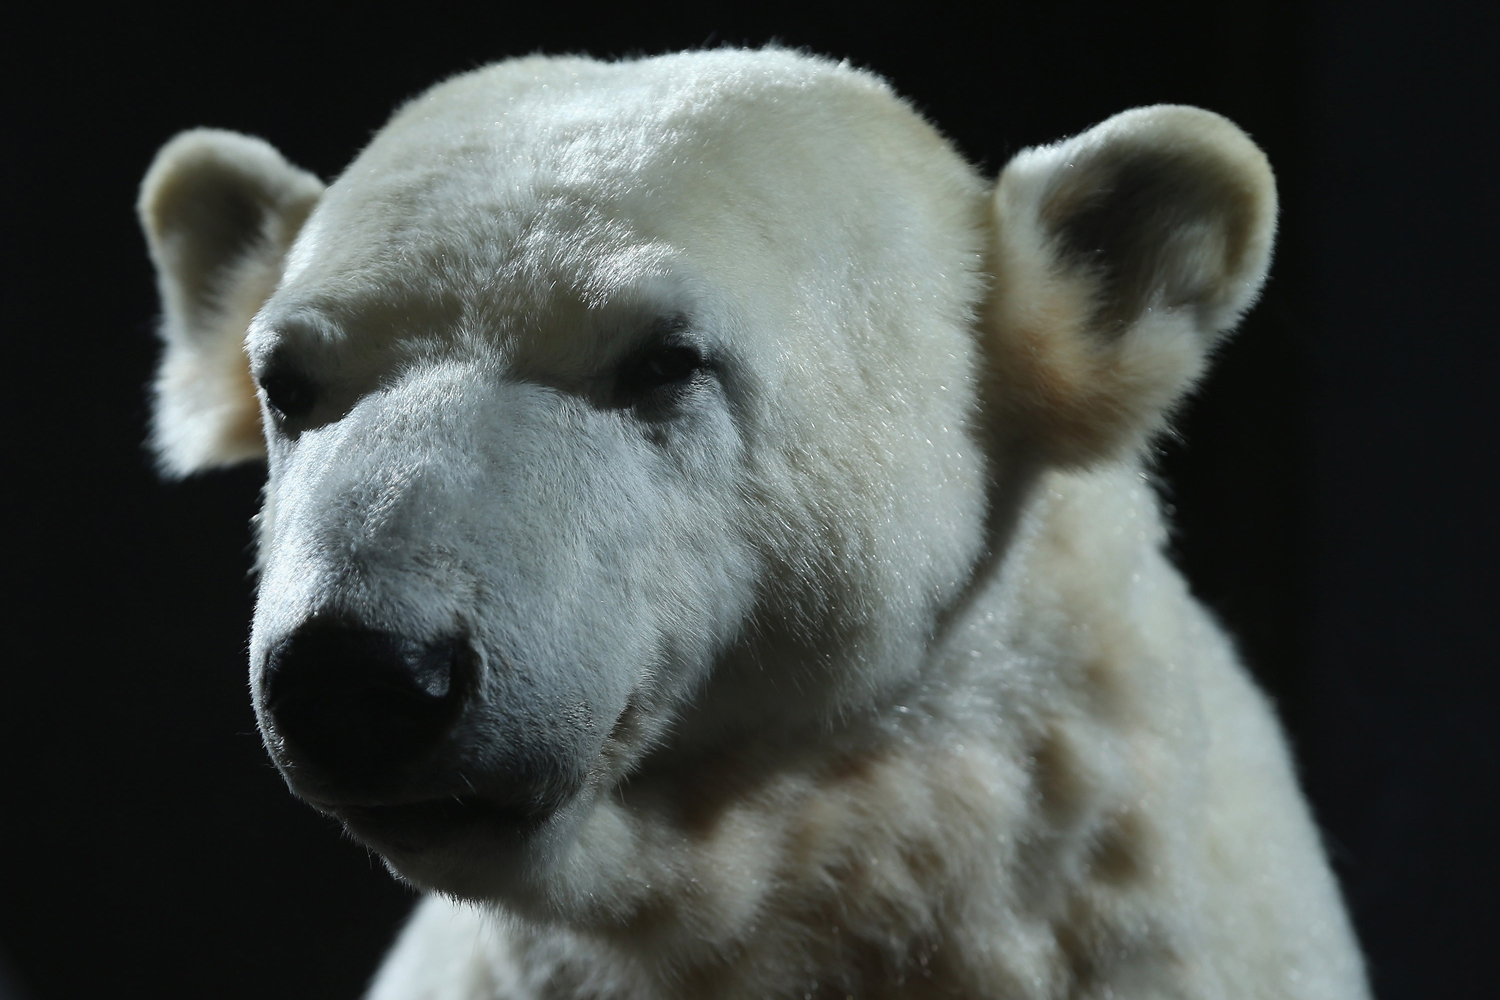 Feb. 16, 2013. A model of Knut the polar bear, that features Knut's original fur, stands on display to the public on its first day at the Natural History Museum in Berlin, Germany.